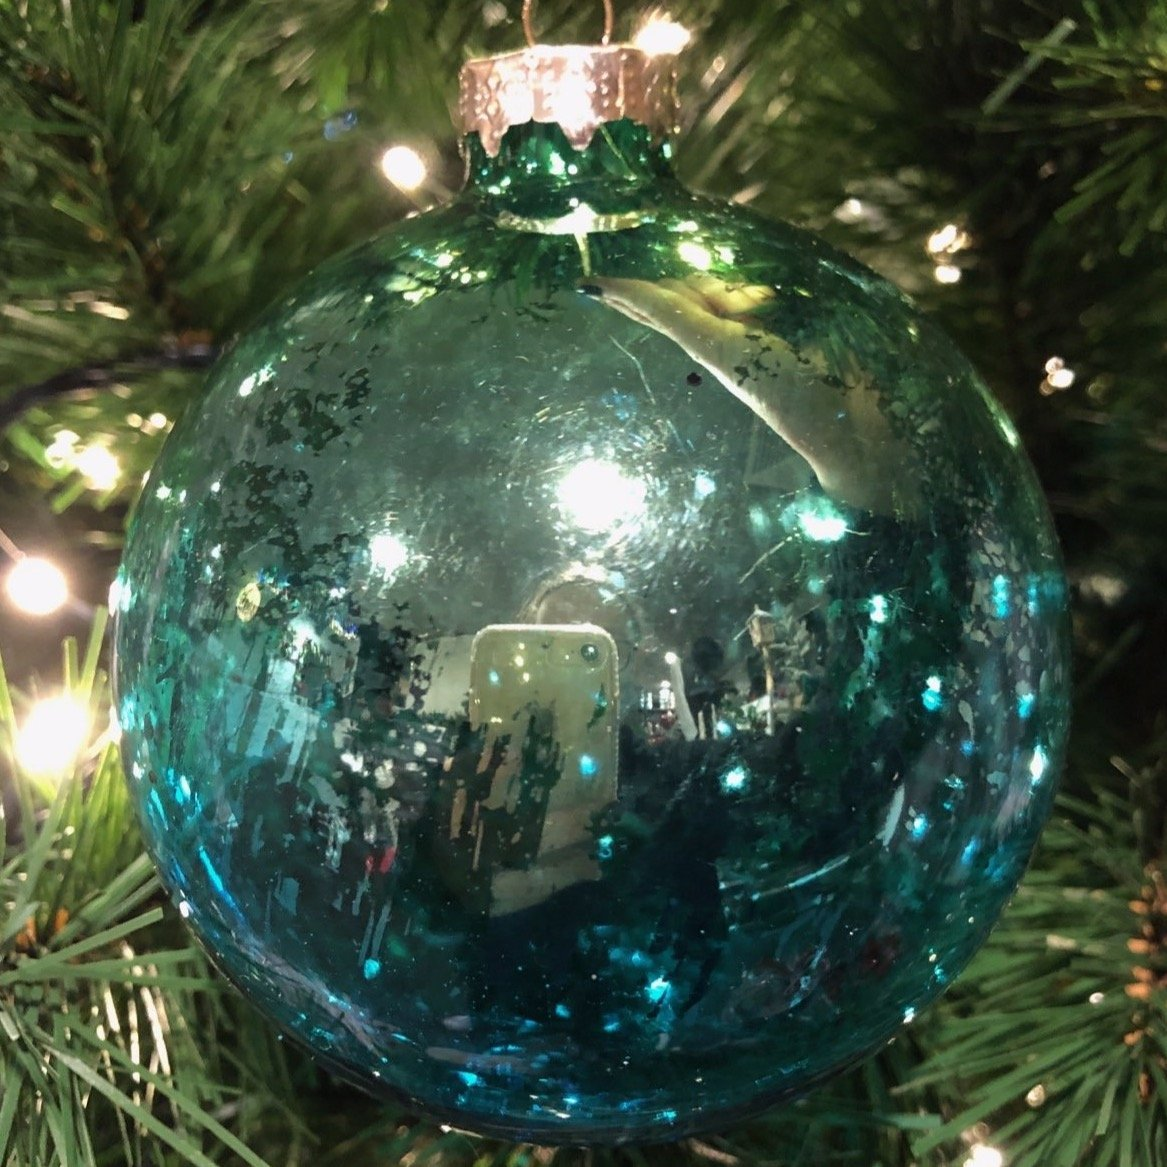 Turquoise Antique Glass Ornament, 10cm - My Christmas